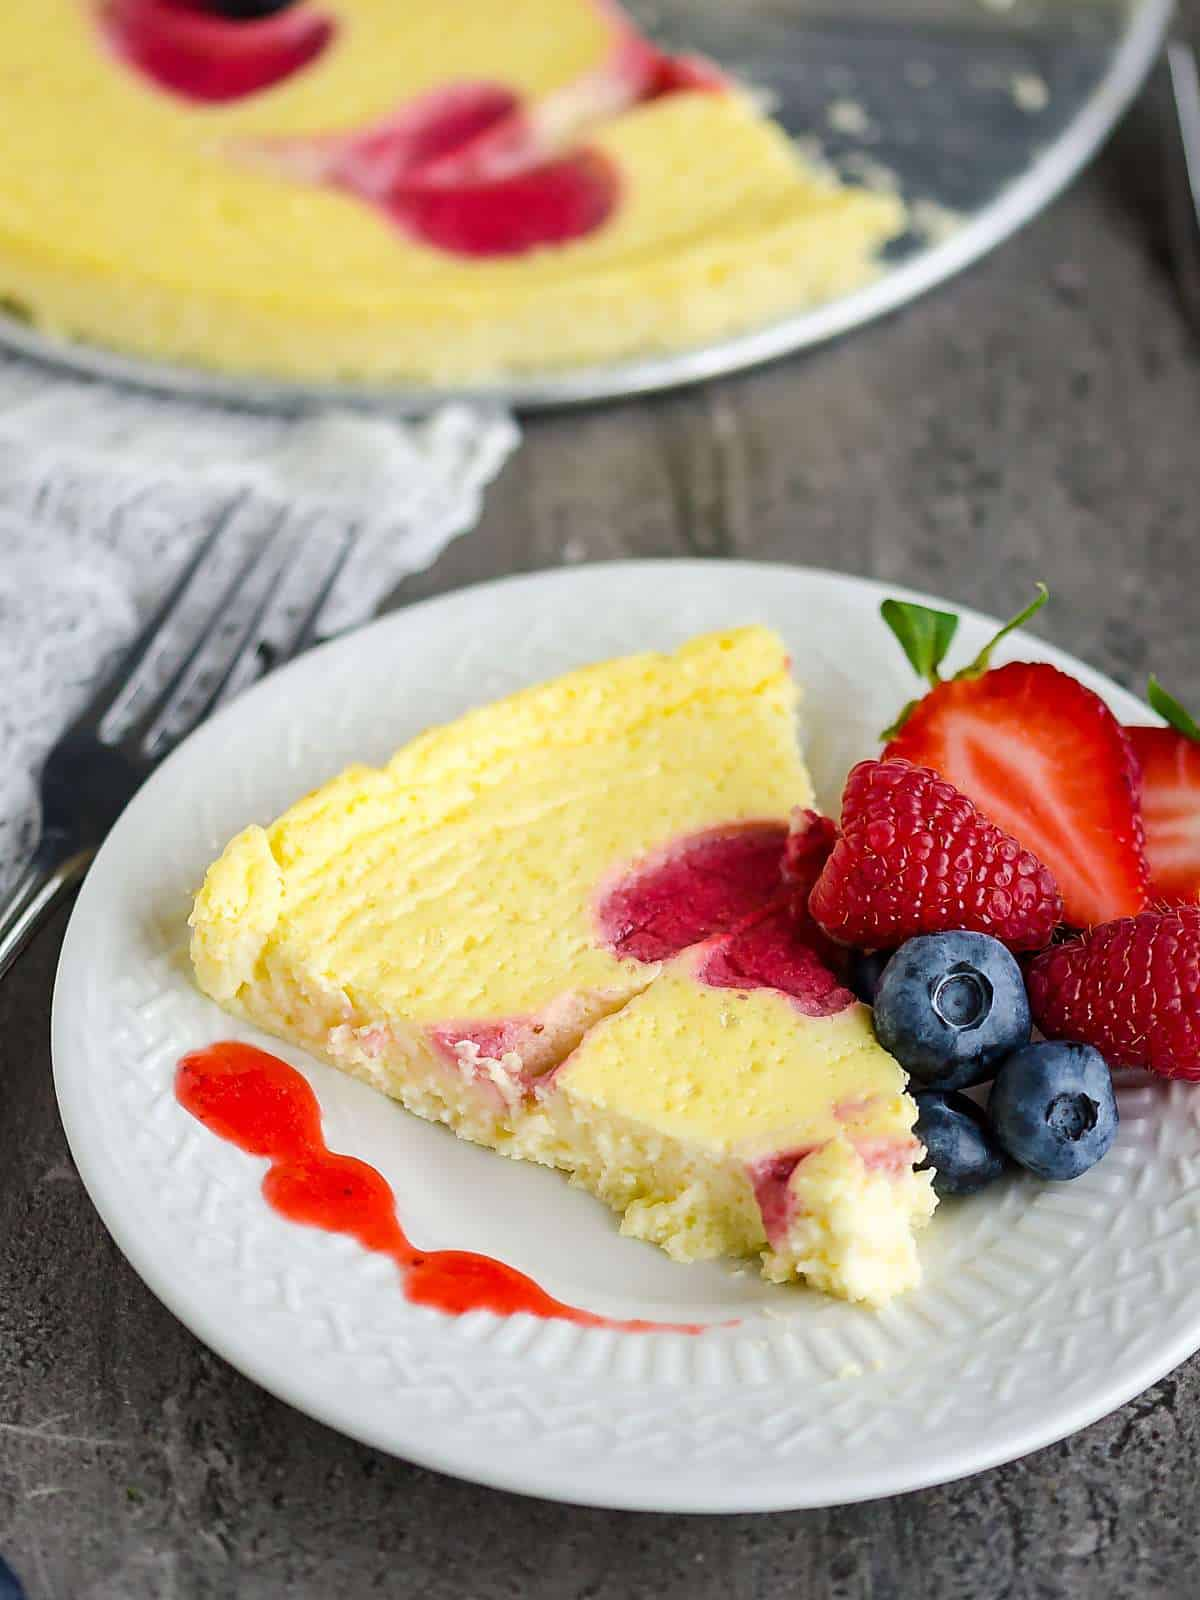 How To Make The Perfect Cheesecake Without All The Calories But Still All The Flavor